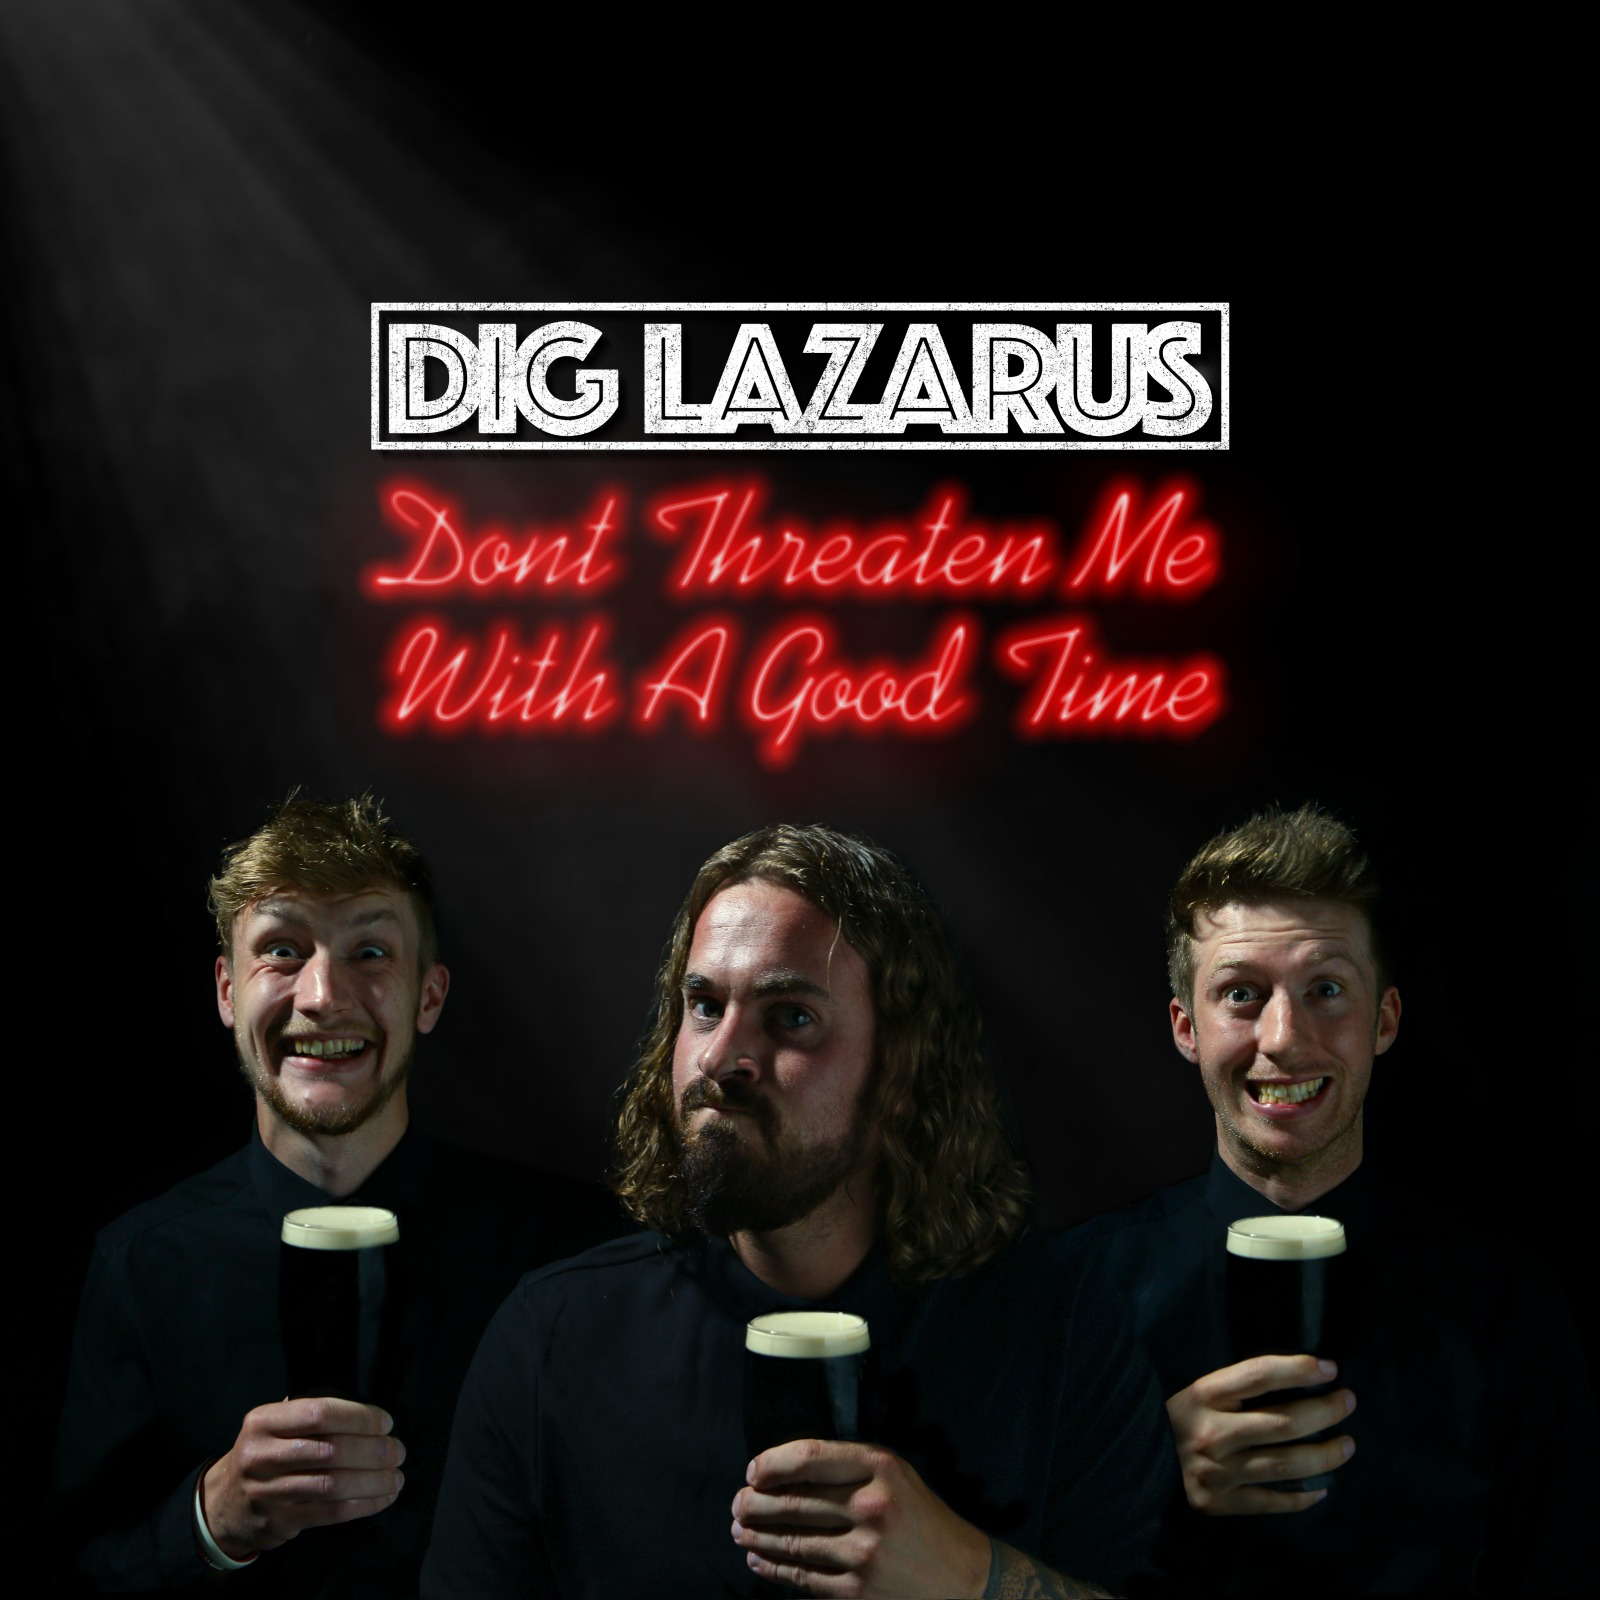 Dig Lazarus say Don't Threaten Me With A Good Time